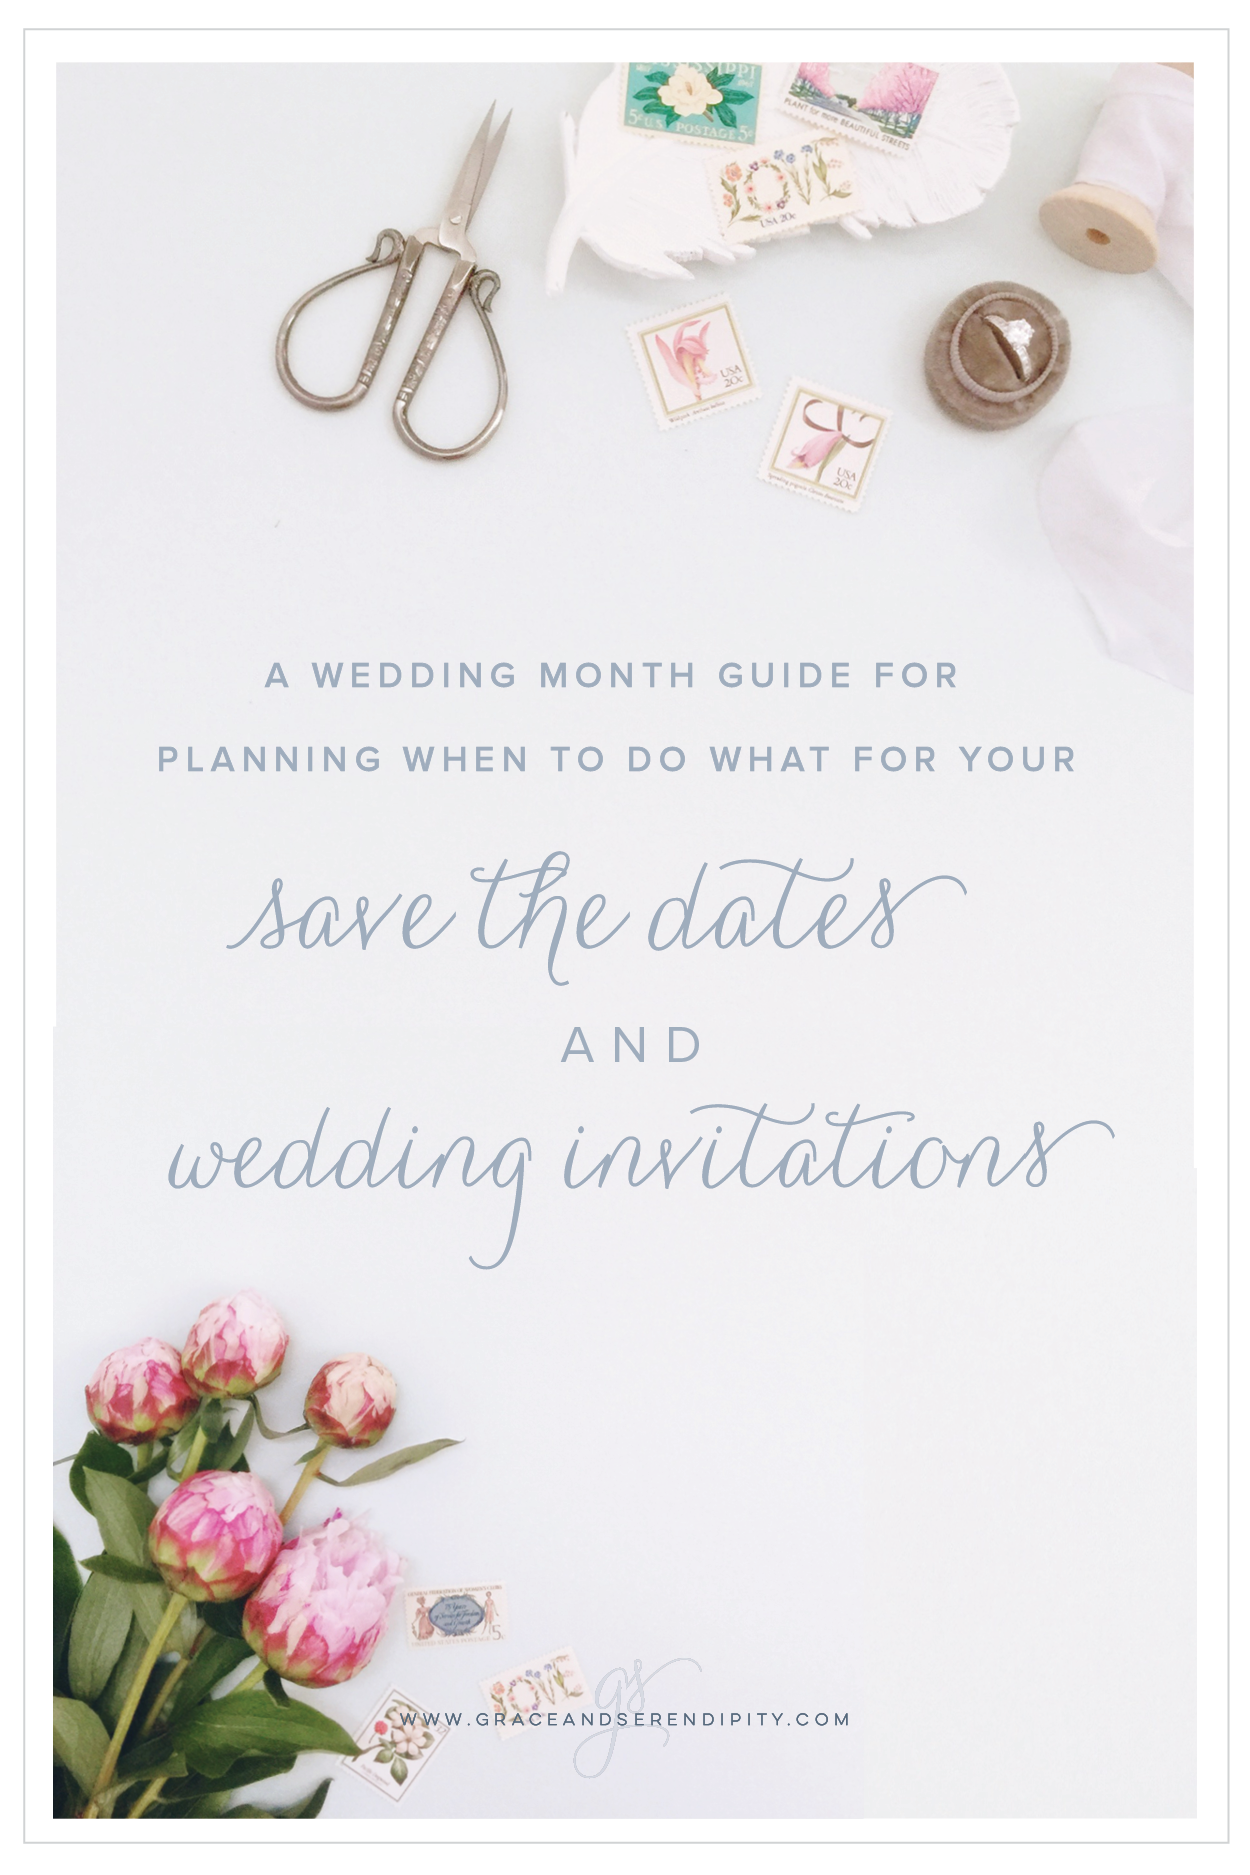 When to Order Save the Dates and Wedding invitations by wedding month, Grace and Serendipity